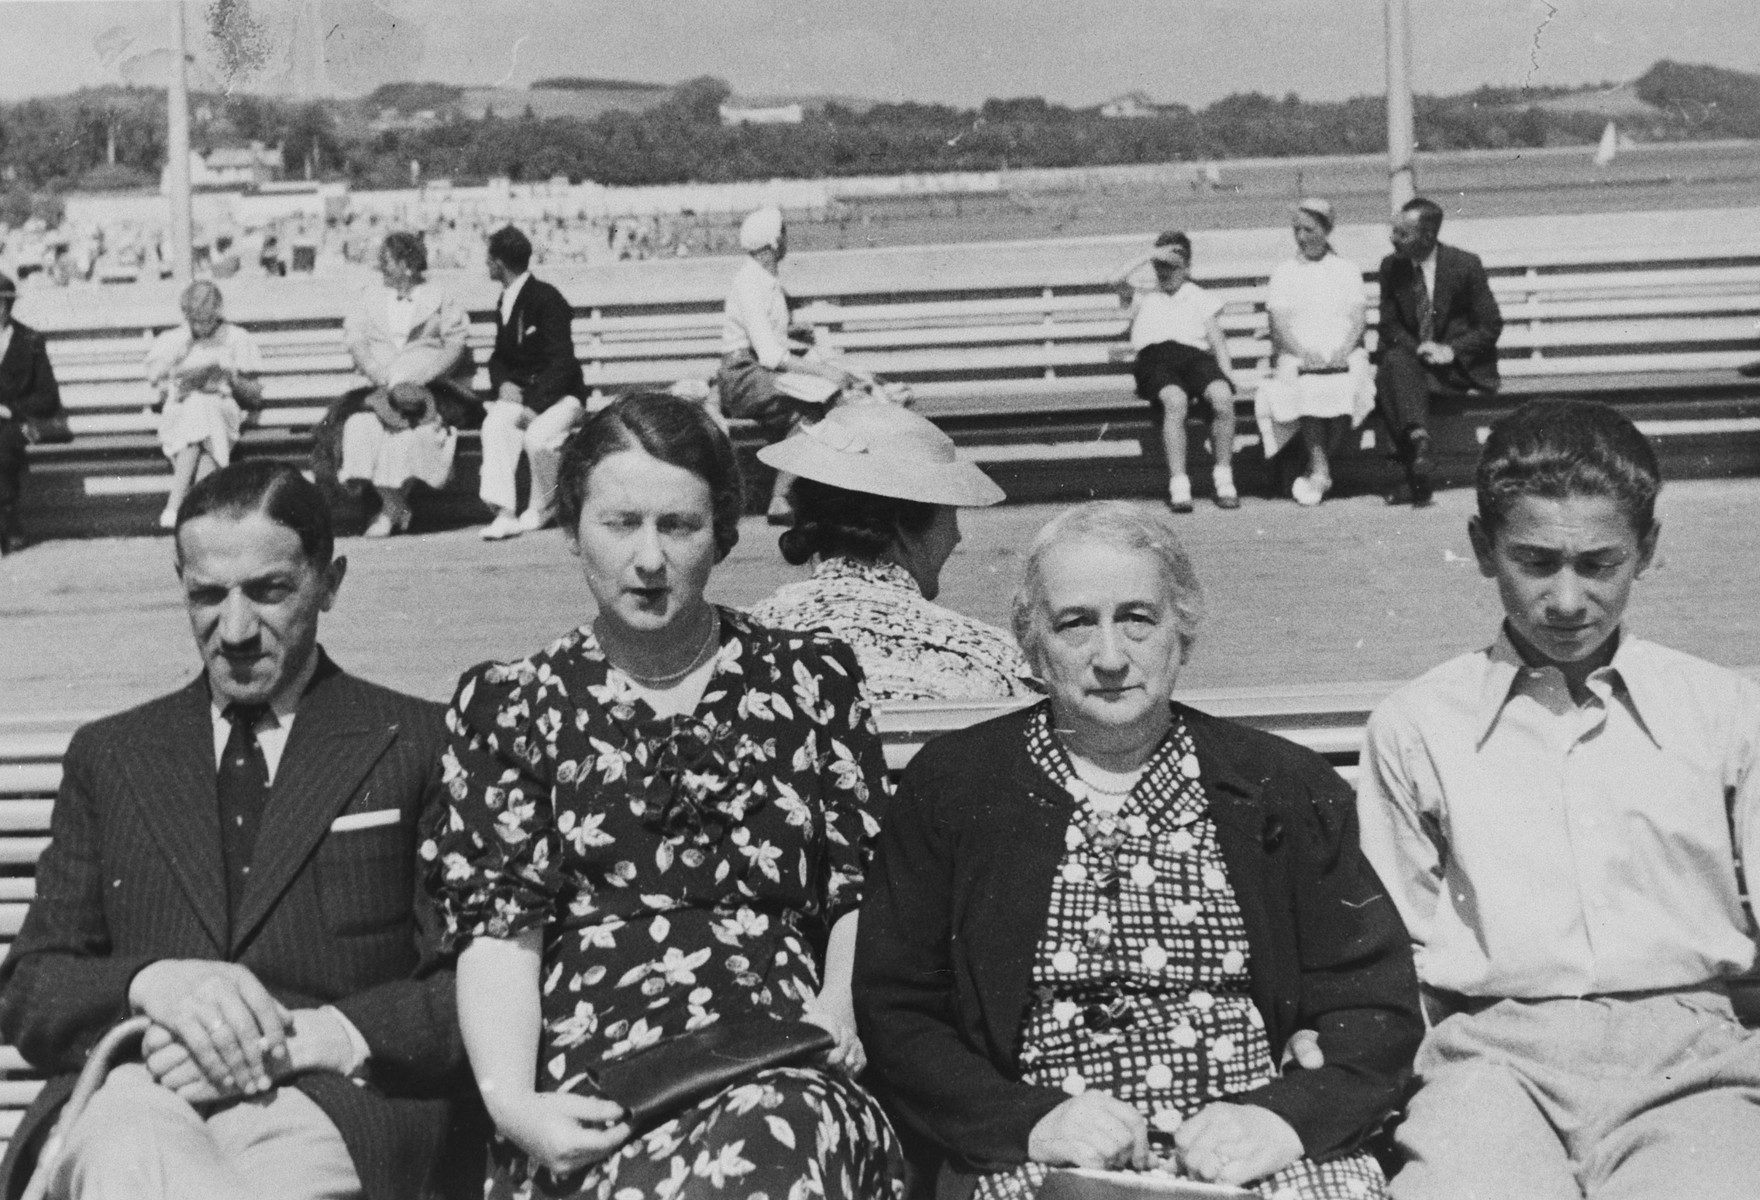 A Polish-Jewish family poses on outdoor benches while on vacation in Sopot.  Pictured from left to right are Julian Ratner, Gustava Ratner, Berta Szrajer, and Marjan Ratner.